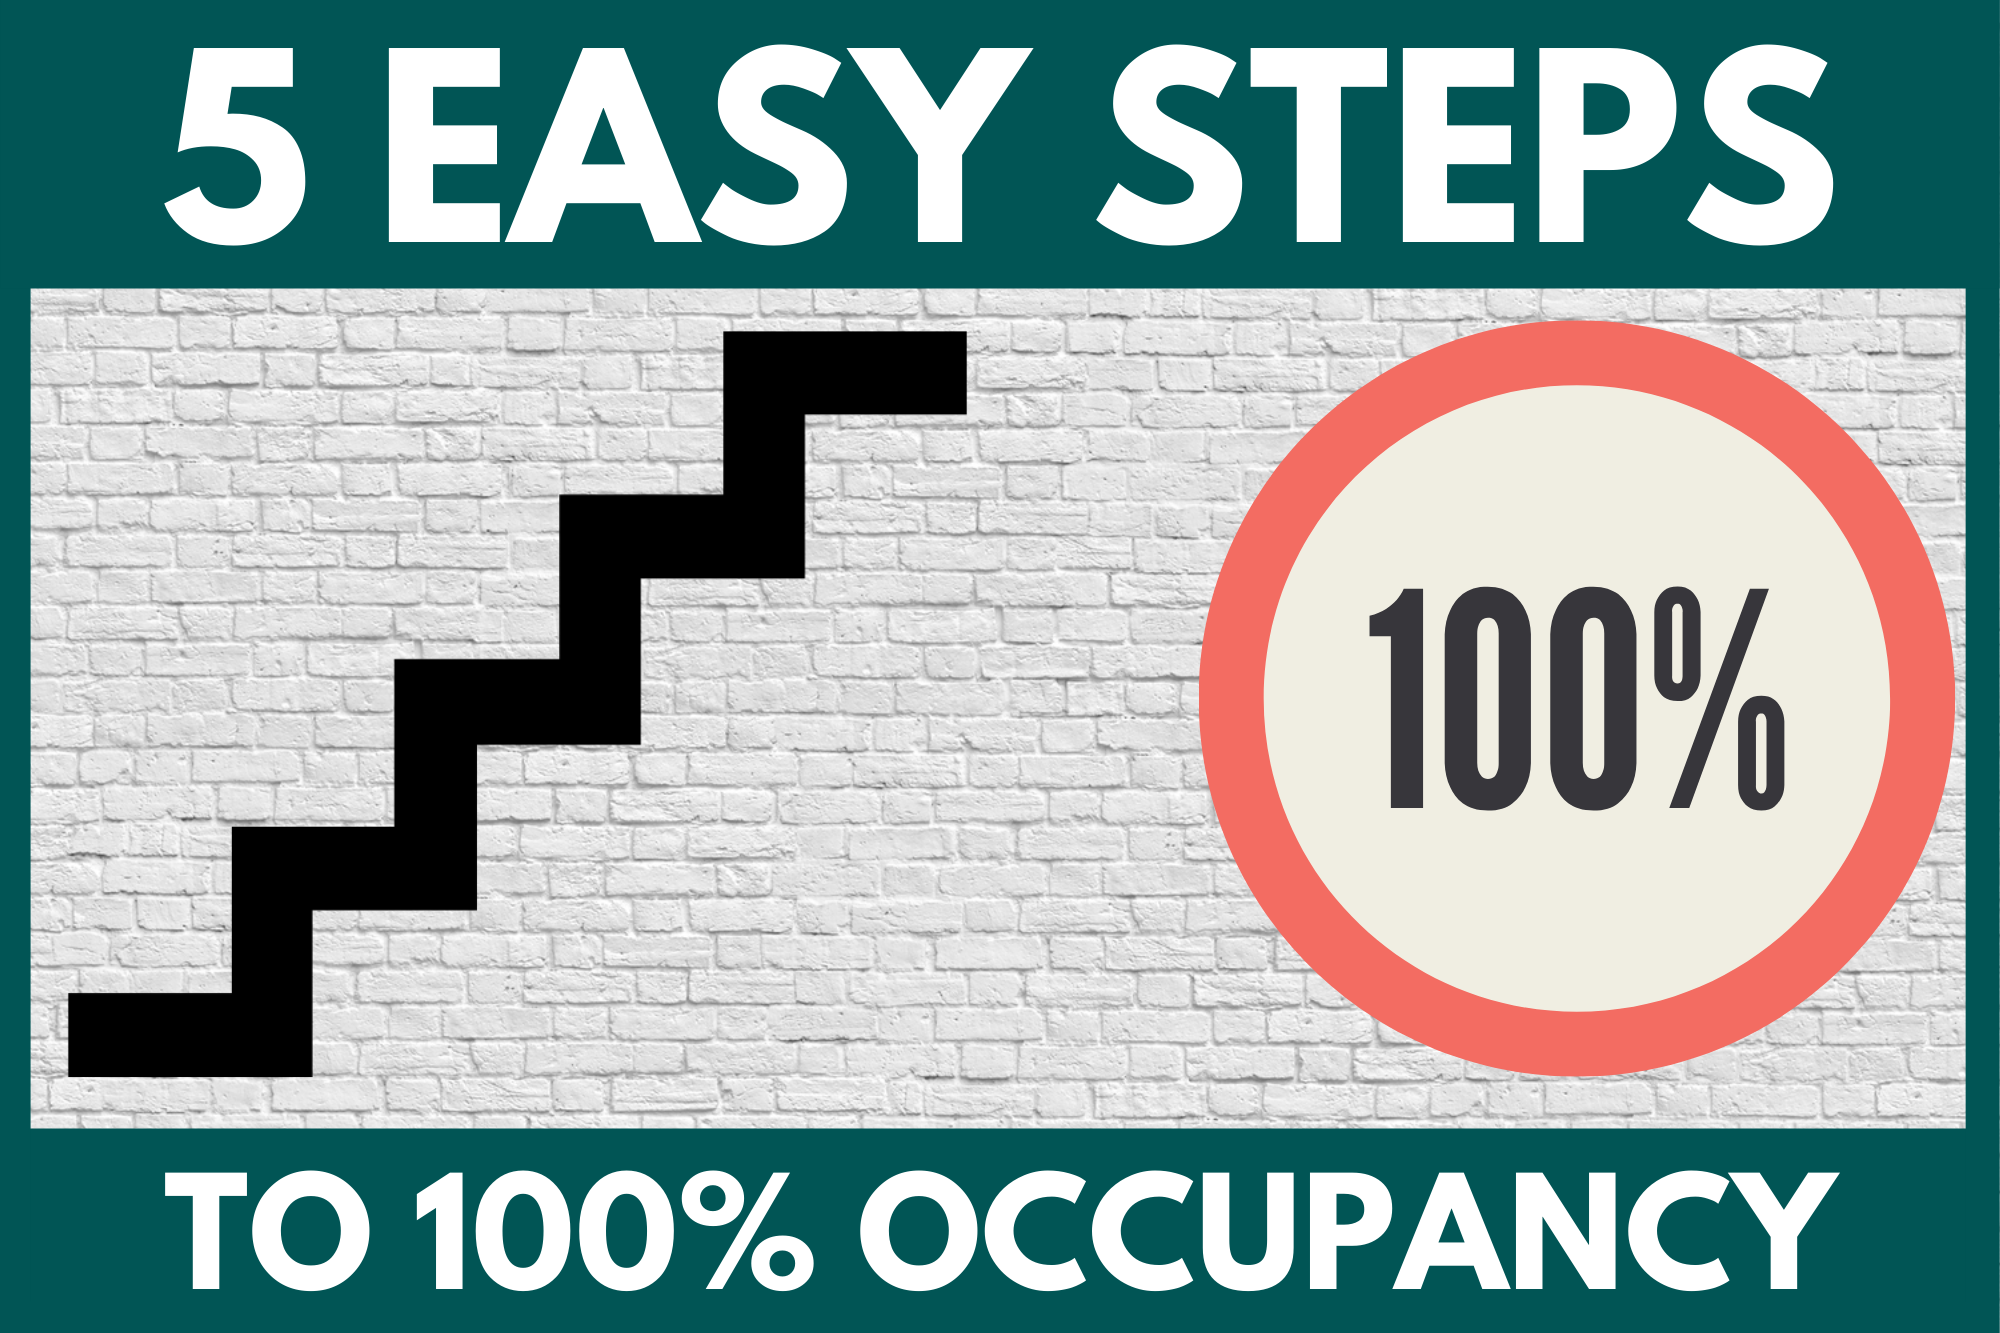 5 Easy Steps to 100% Occupancy